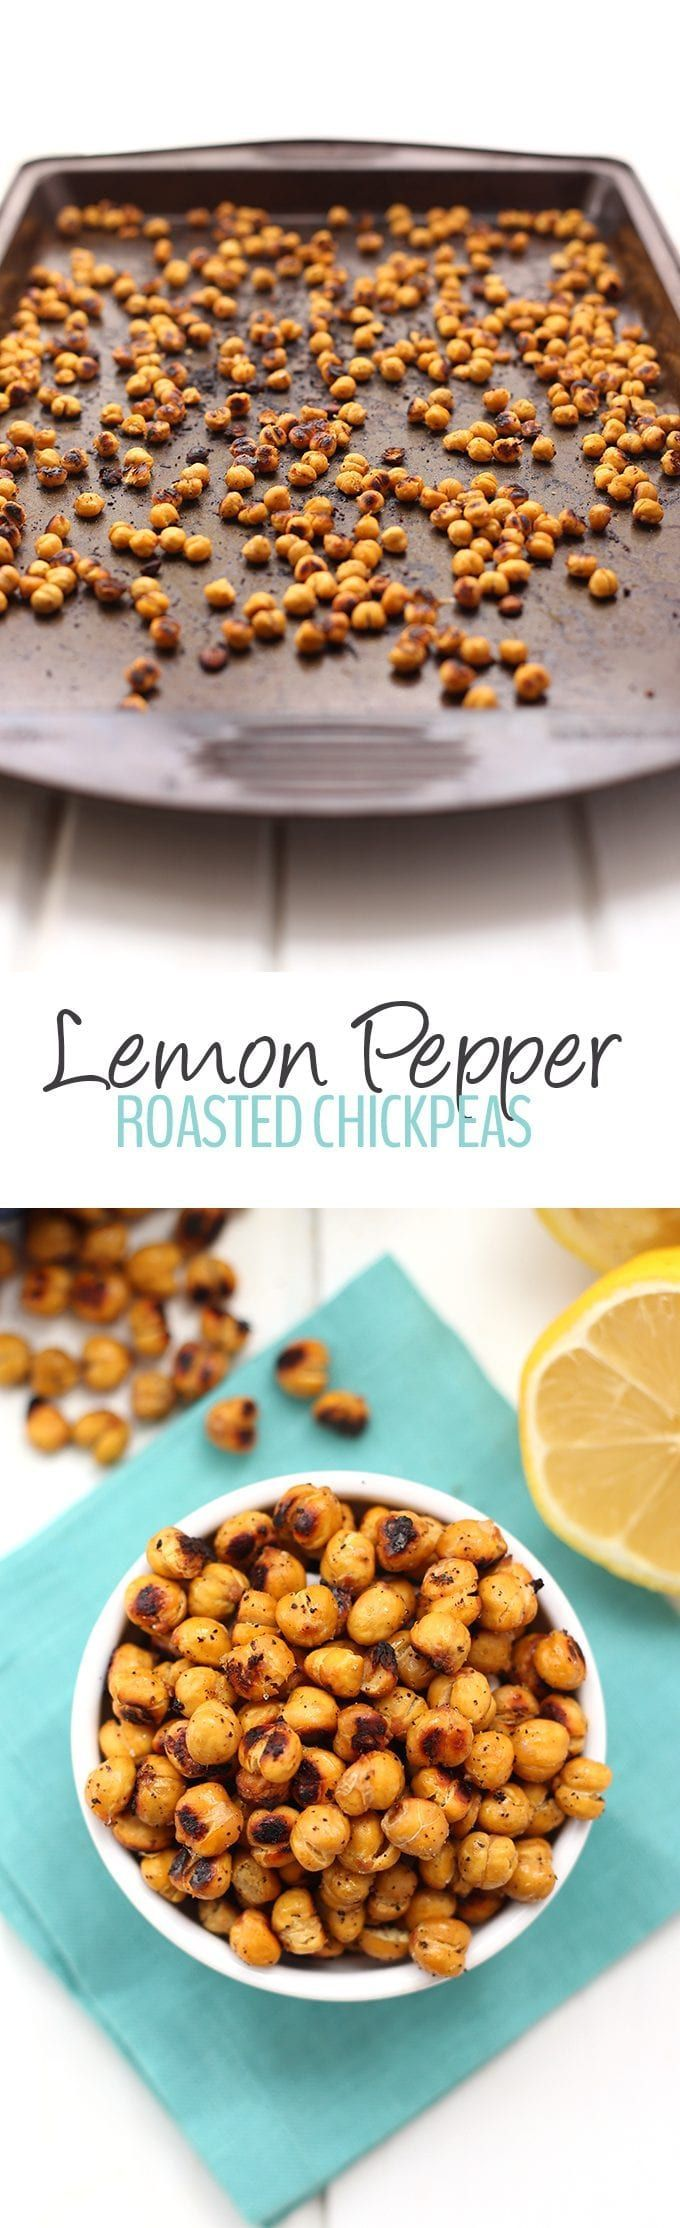 Swap out those bags of chips for these crunchy and zesty Lemon Pepper Roasted Ch...   - Snacks -